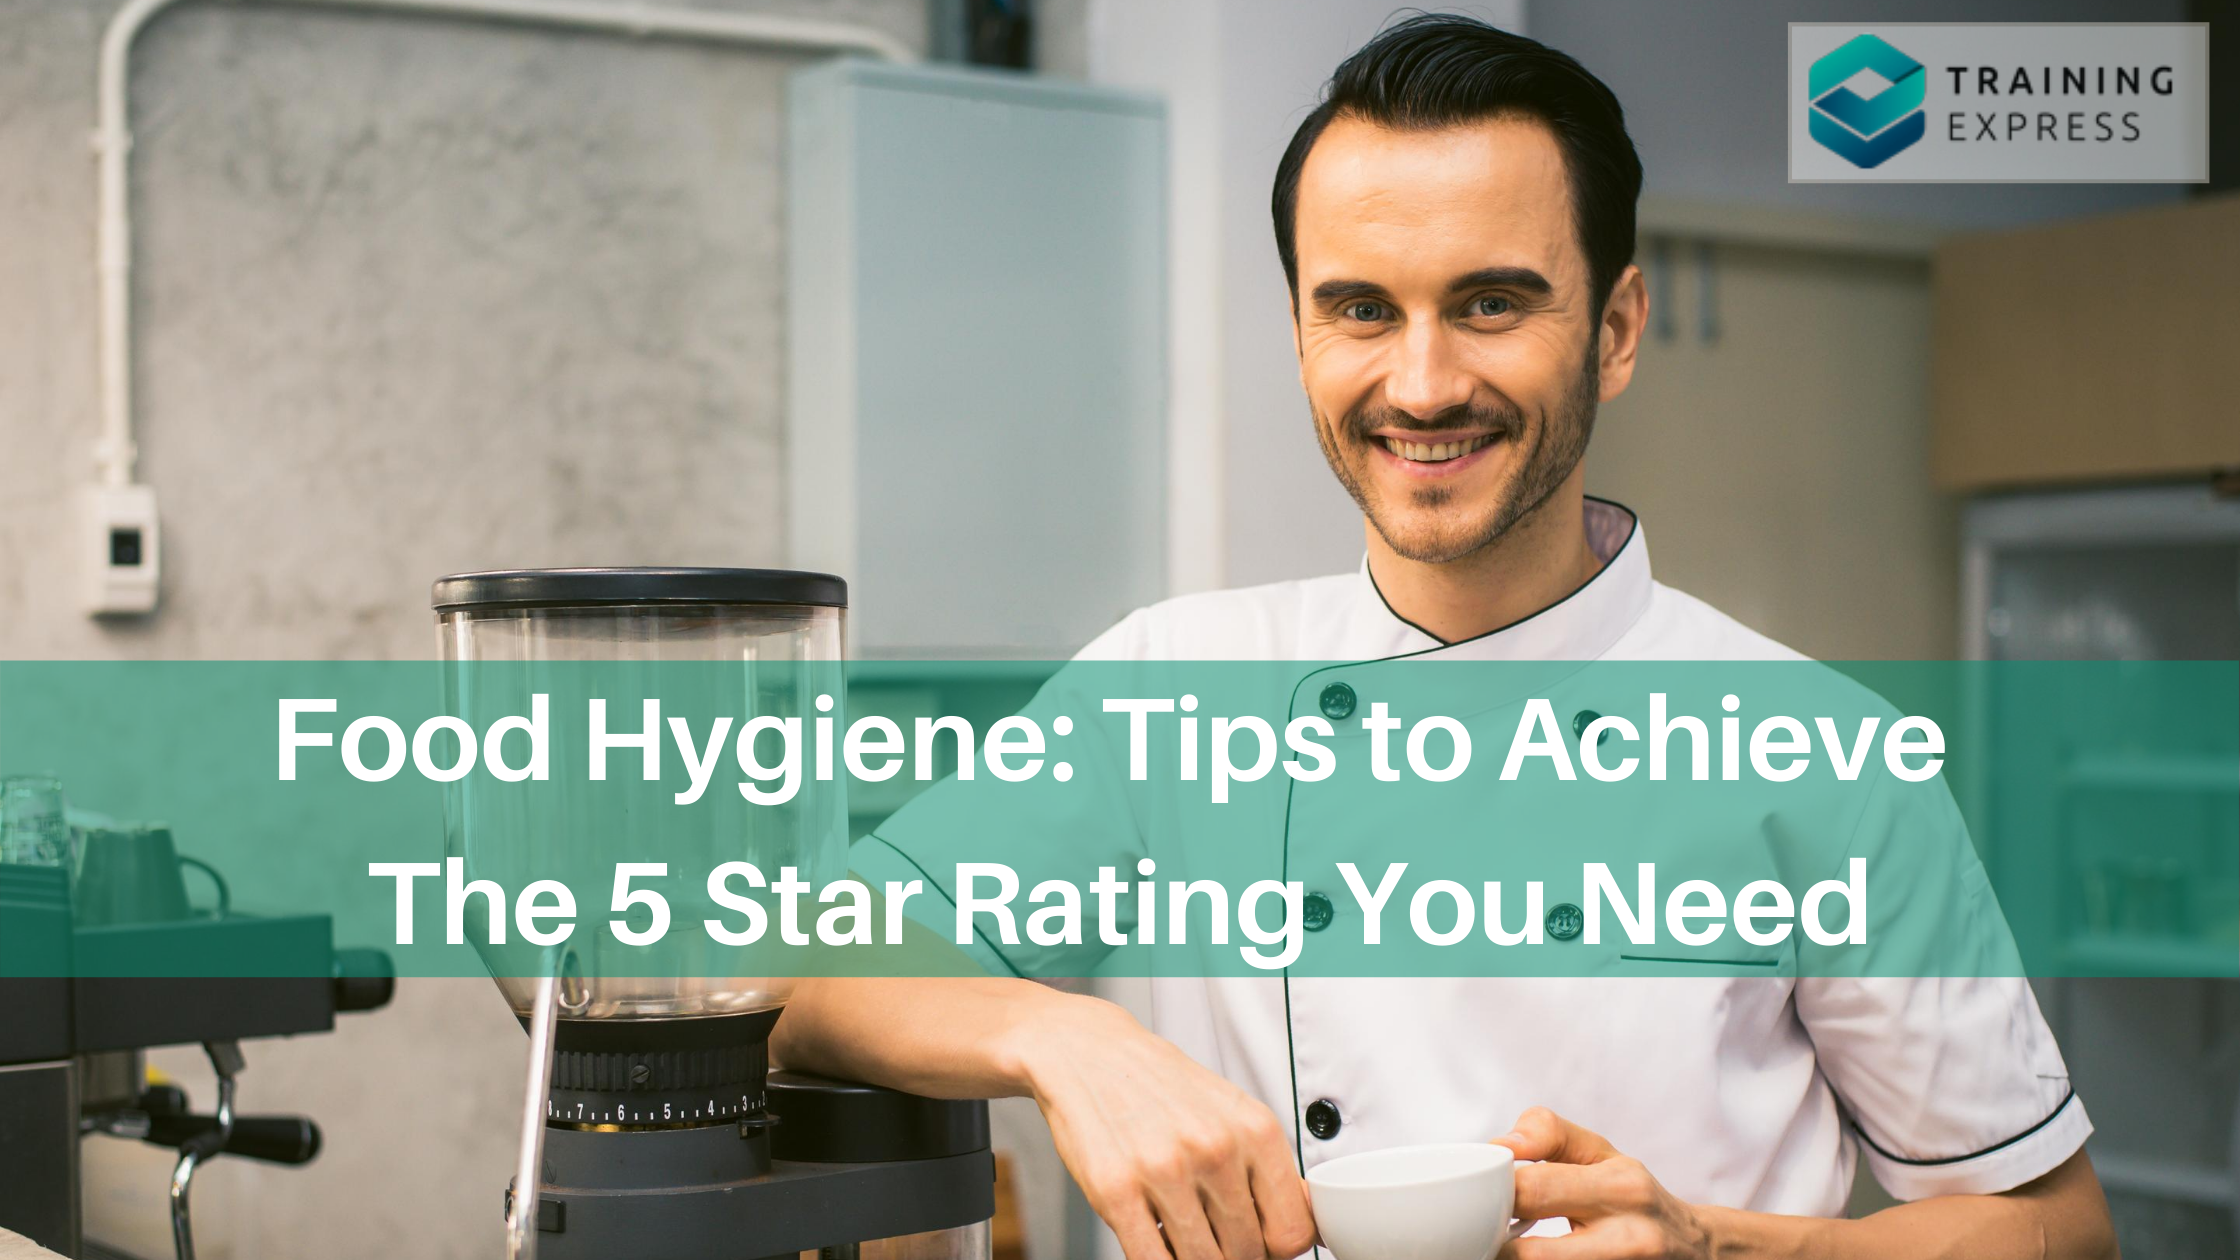 Food Hygiene: Tips to Achieve the 5 Star Rating You Need